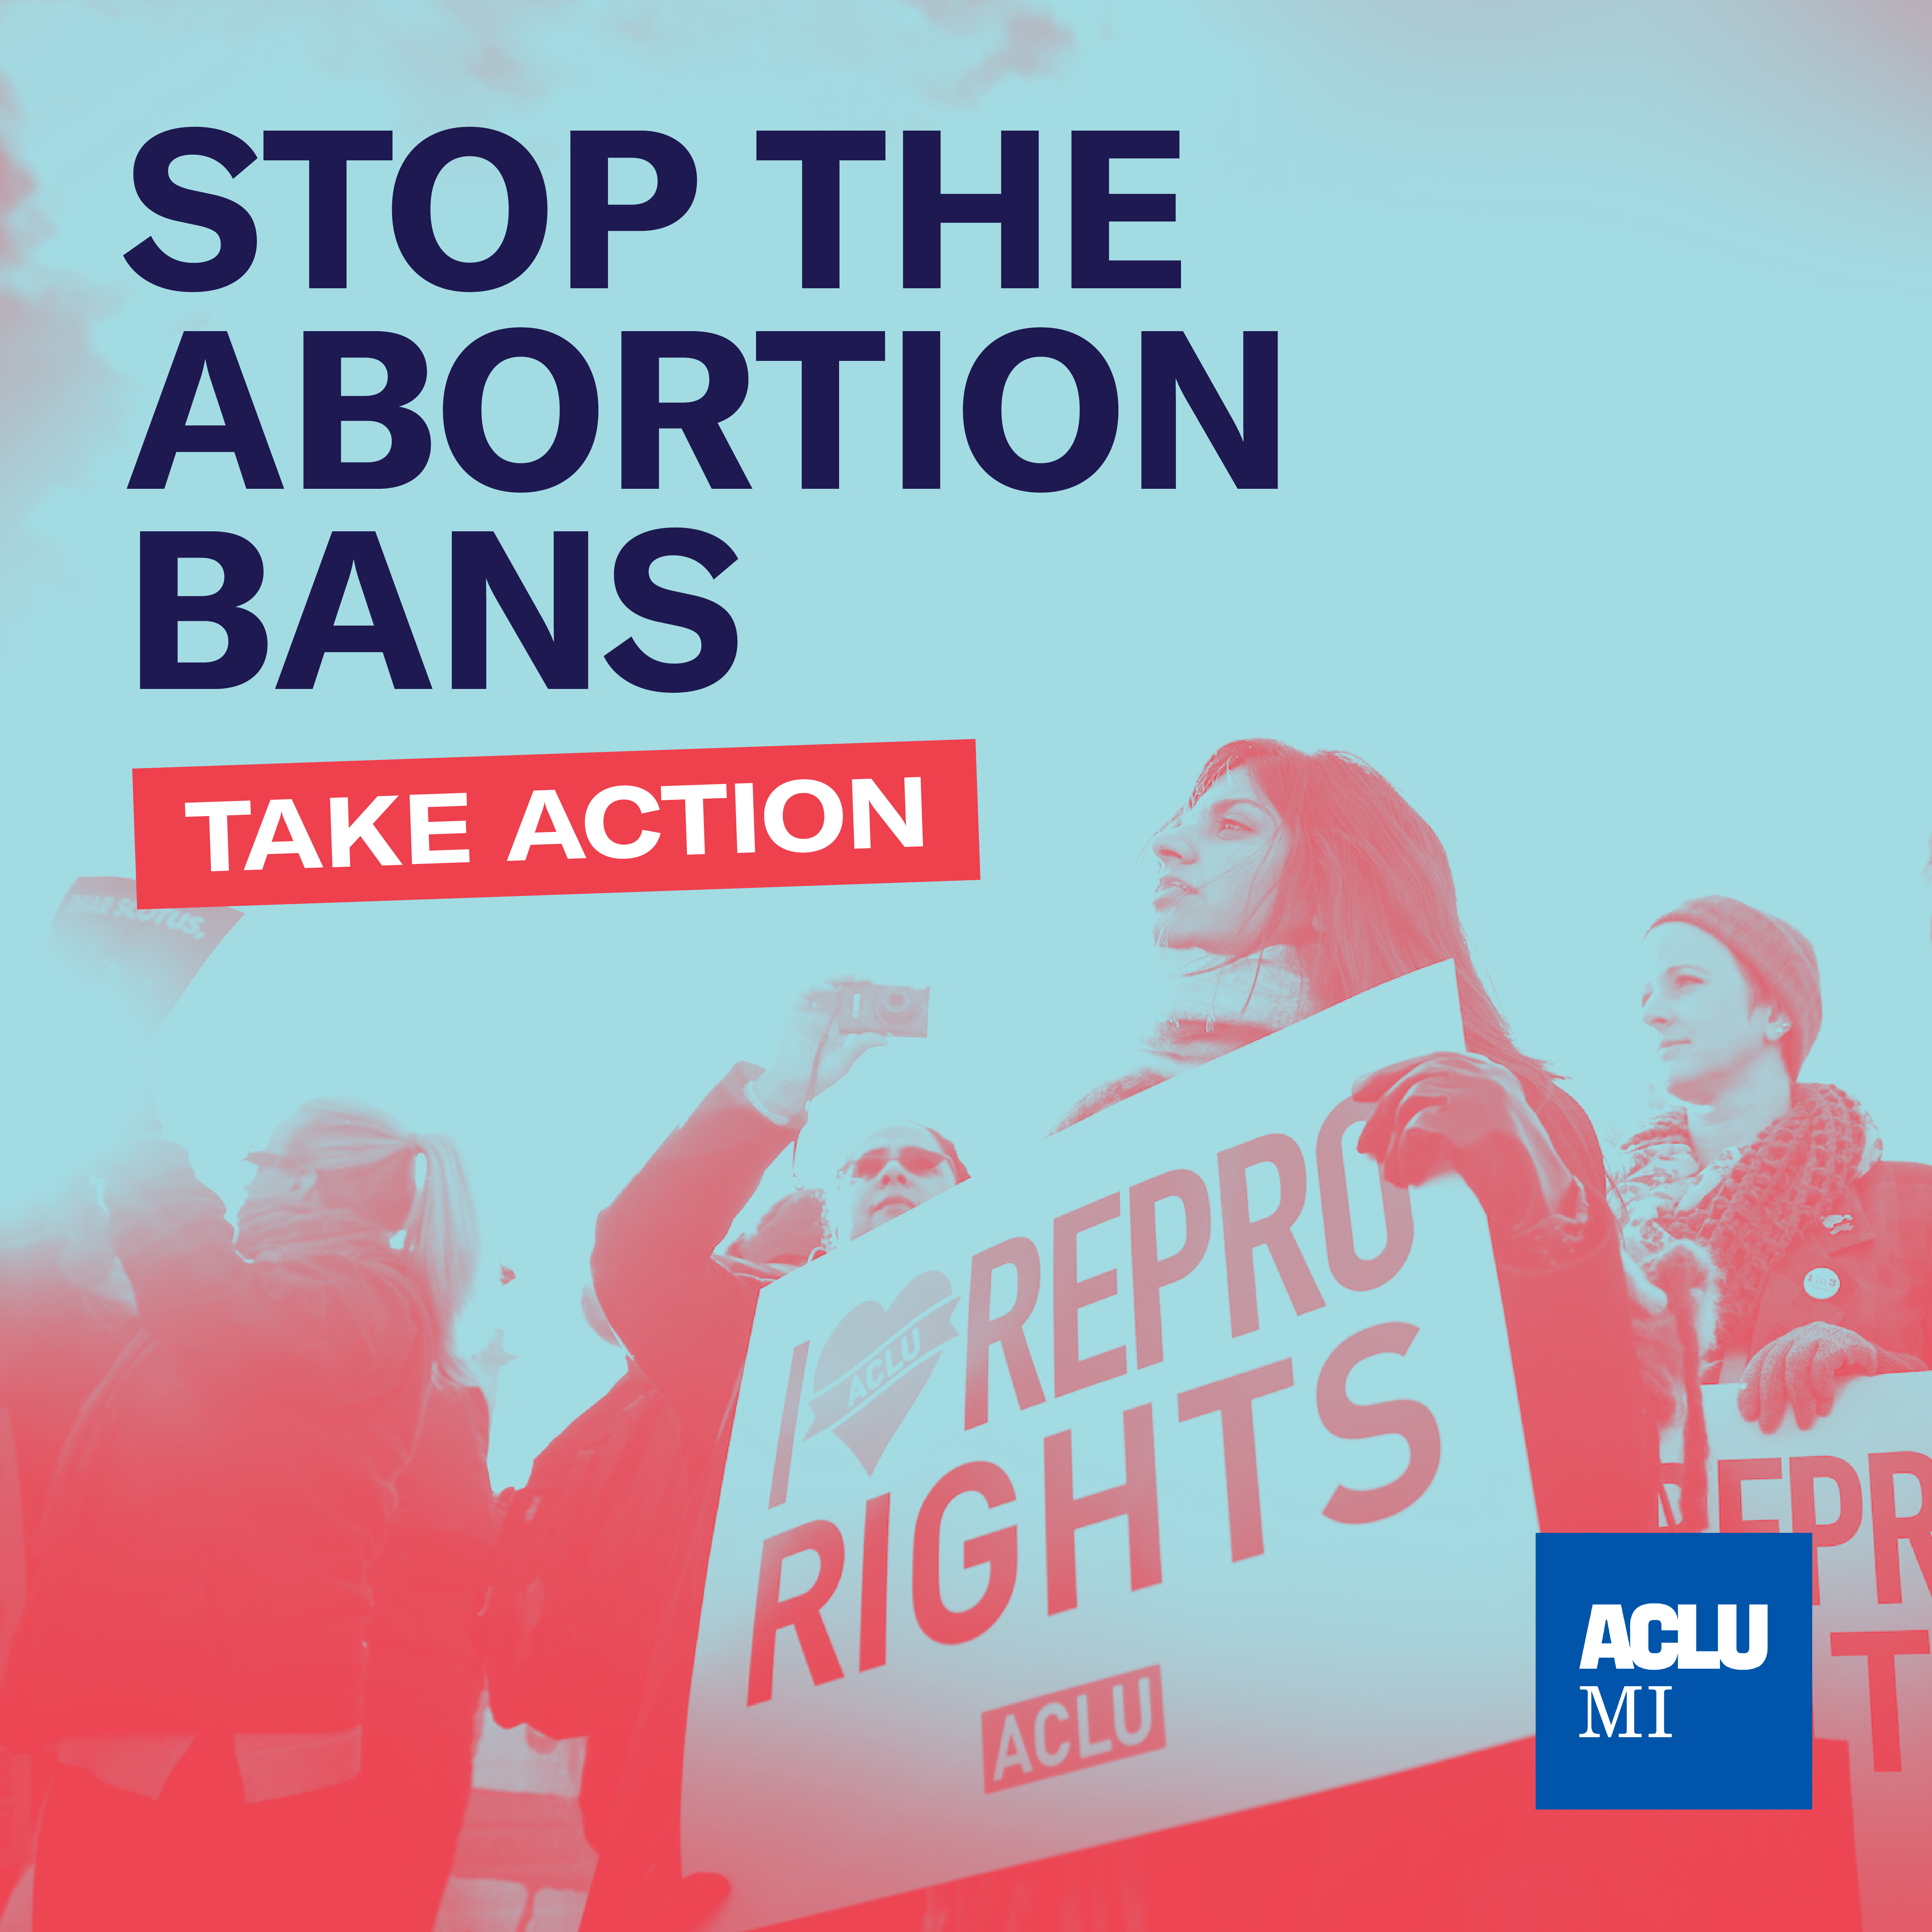 Stop the abortion bans. Take action.